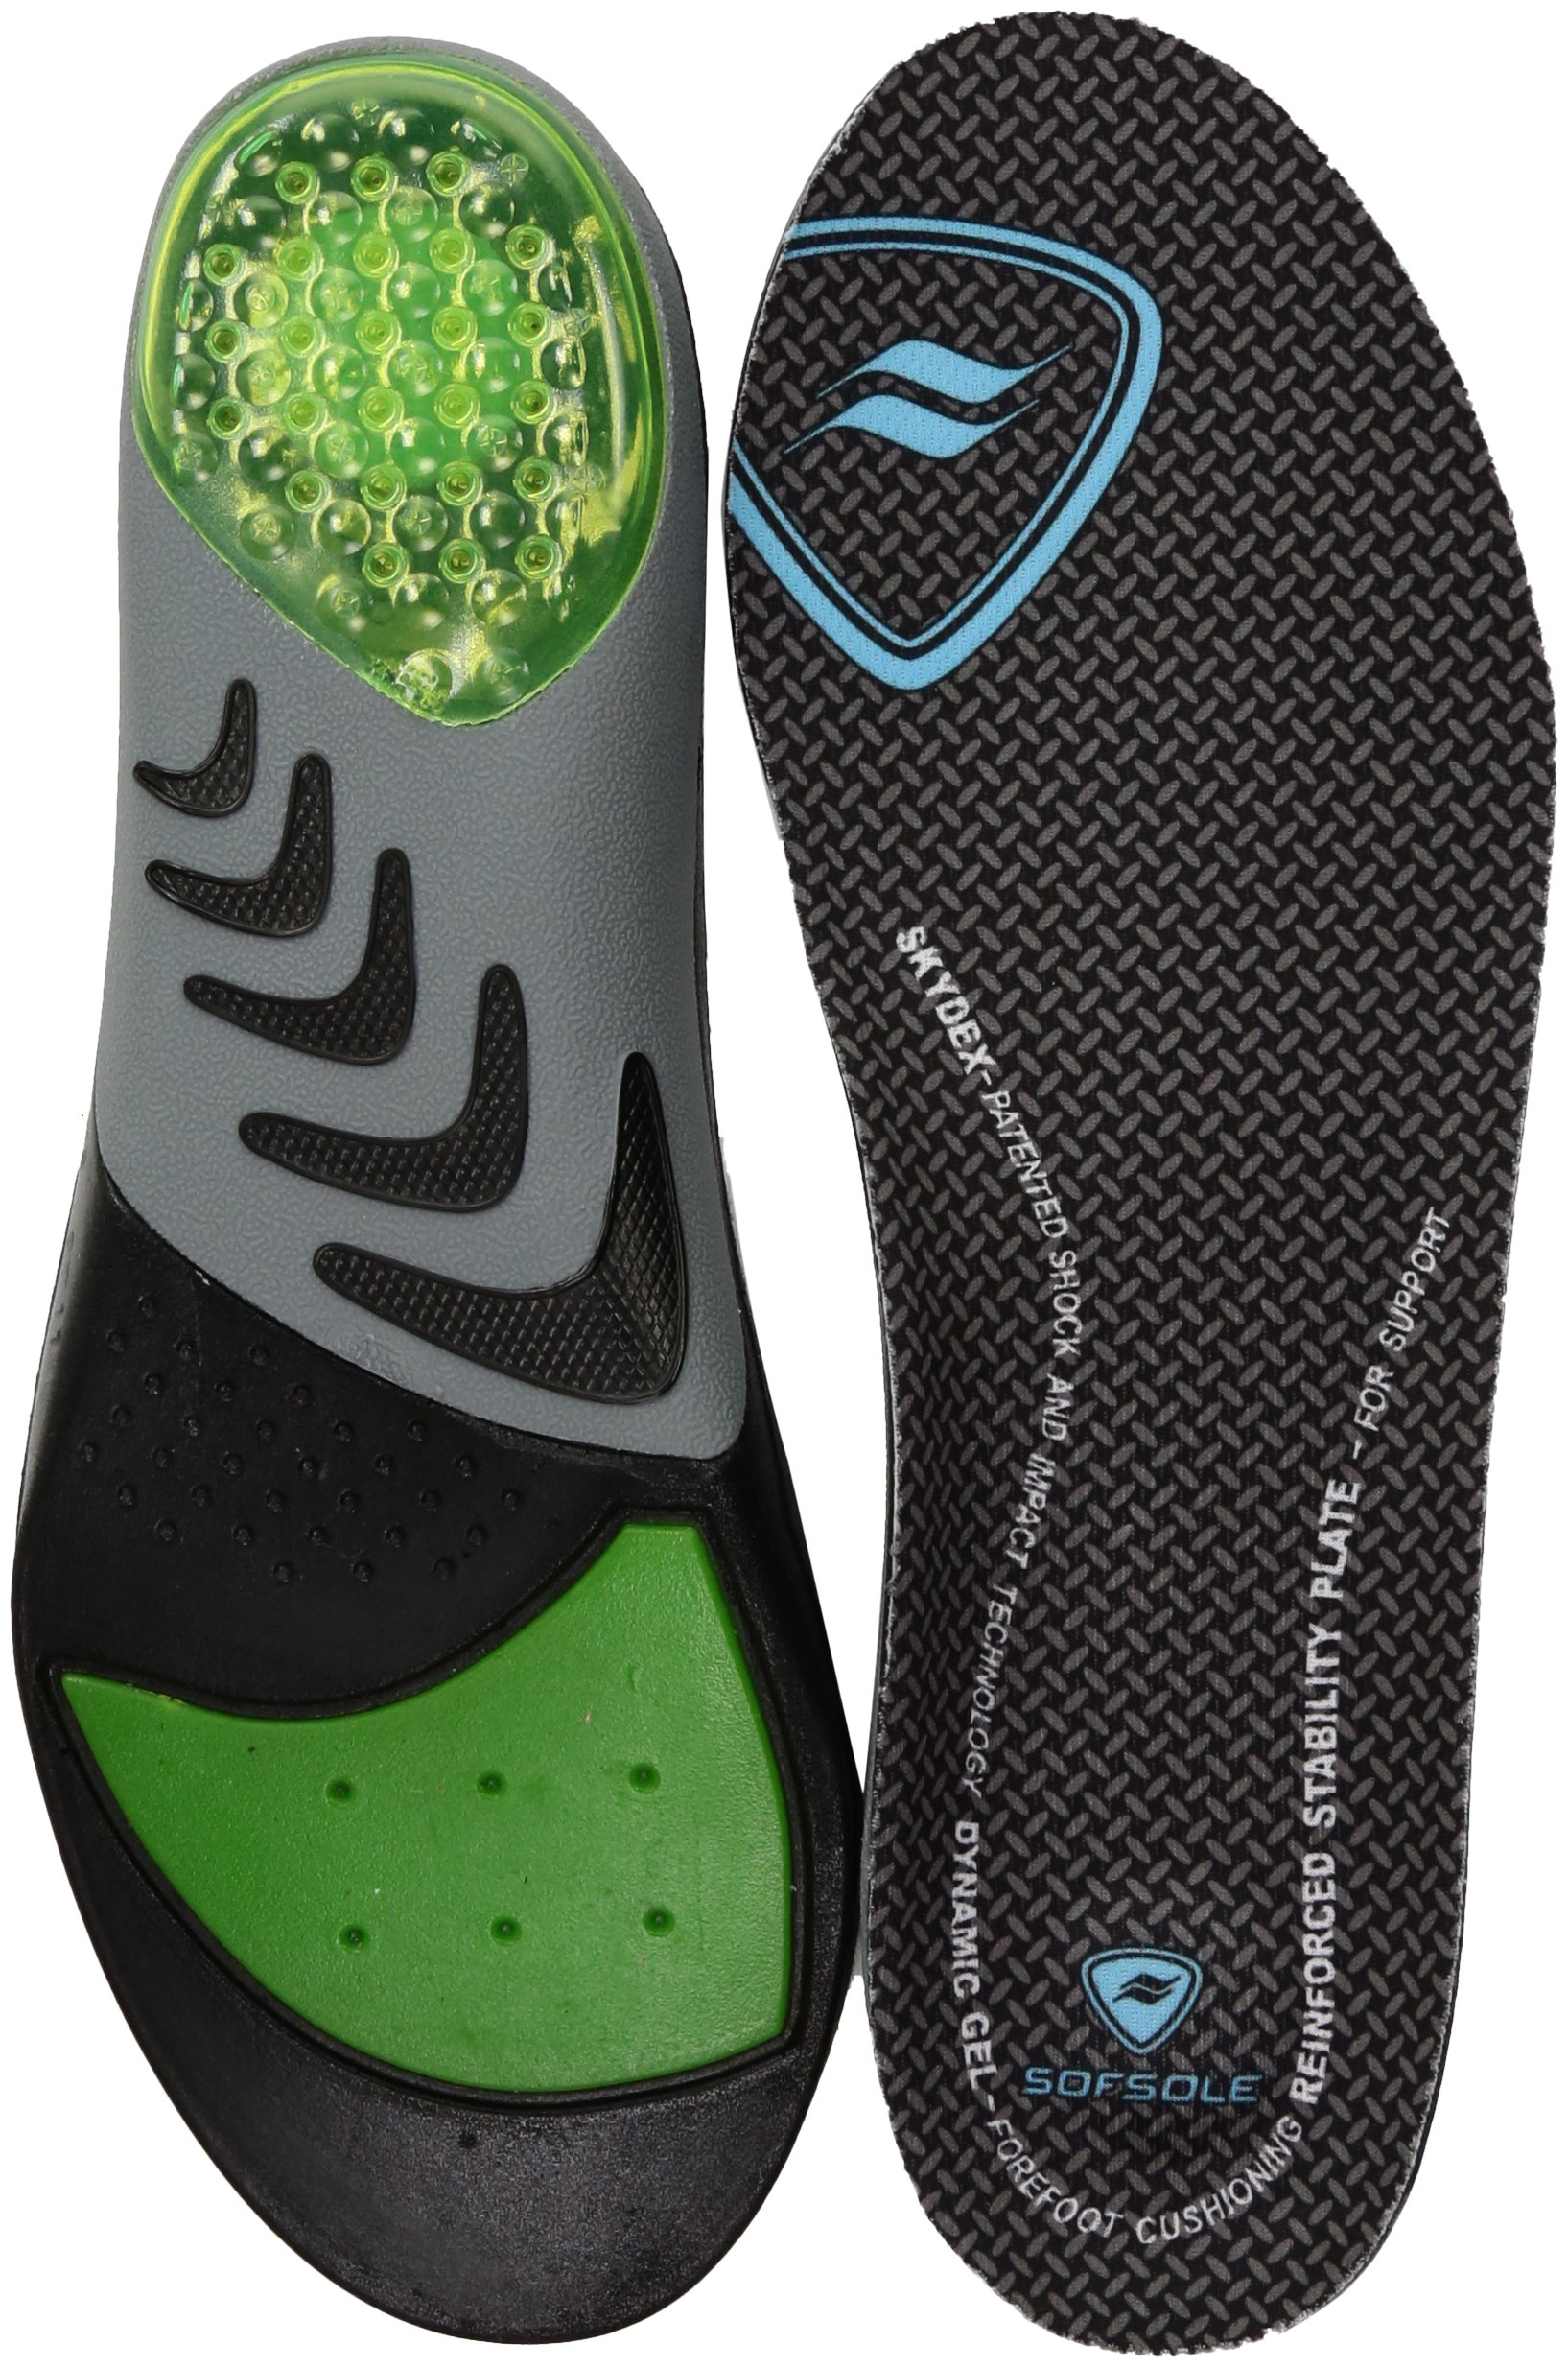 Sof Sole Airr Orthotic Full Length Performance Shoe Insoles, Black, Women's 8-11